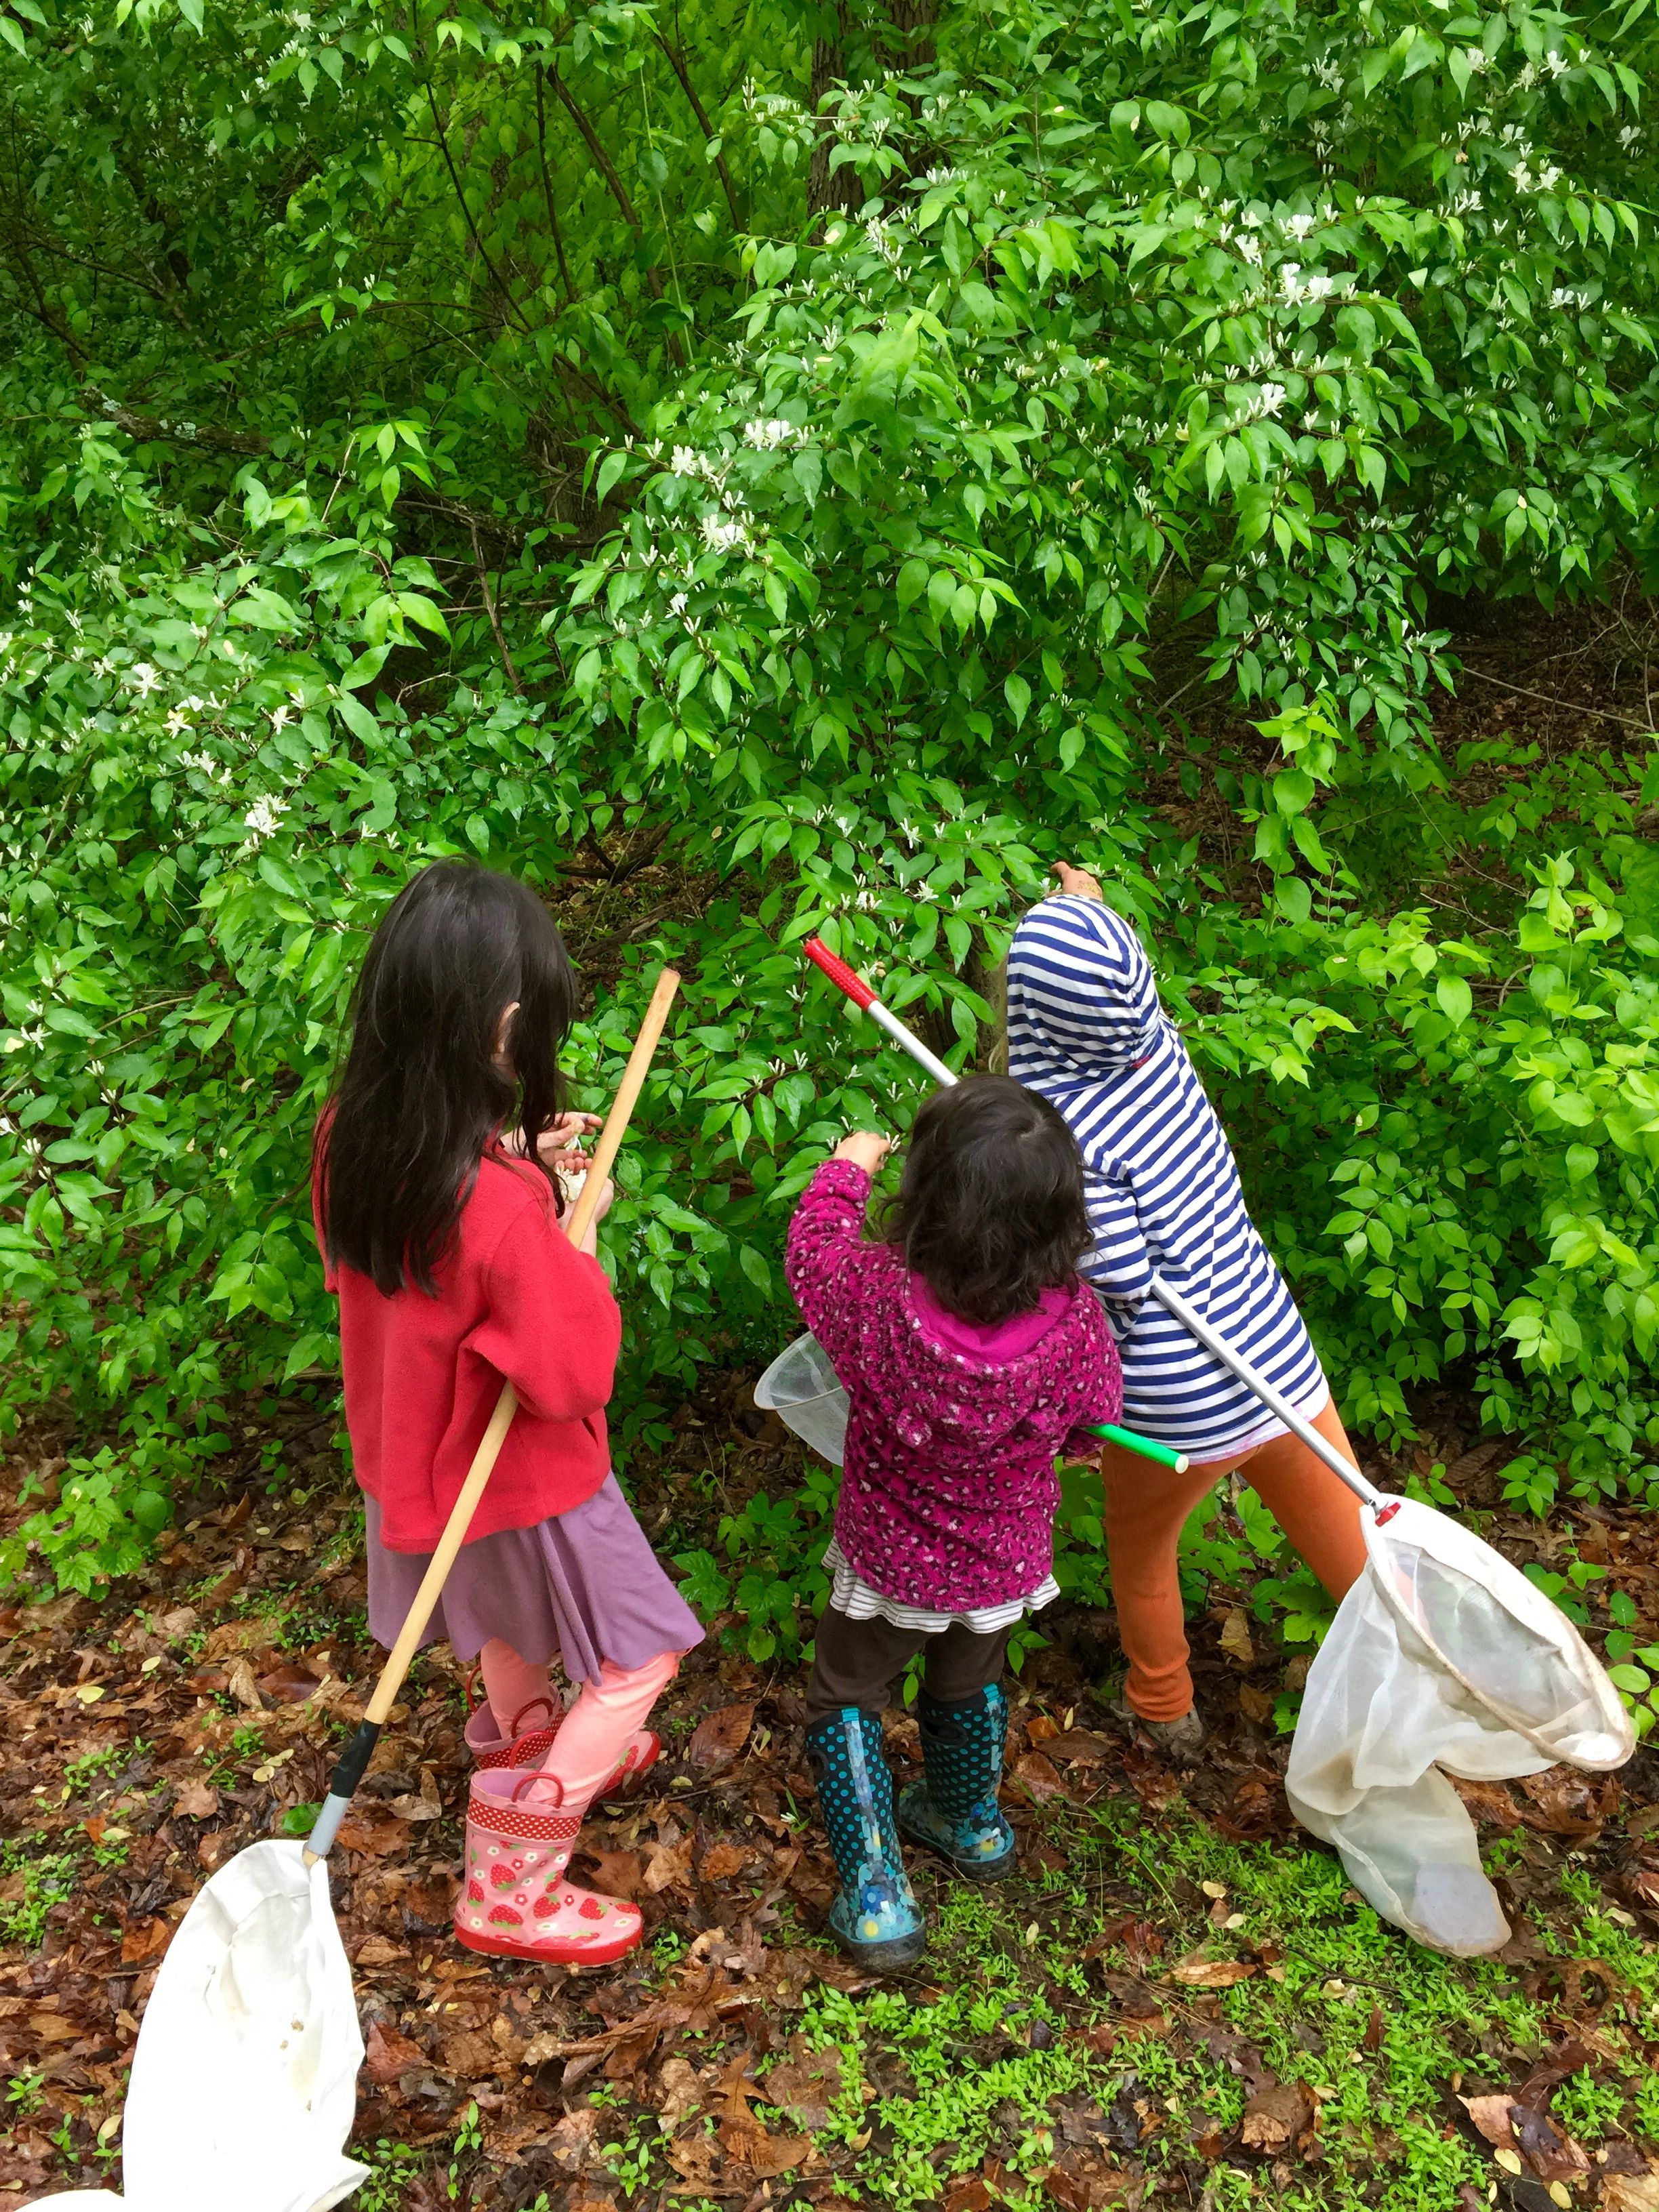 Three children face a tall green bush examining the thick leaves. They are each holding long handled butterfly nets.